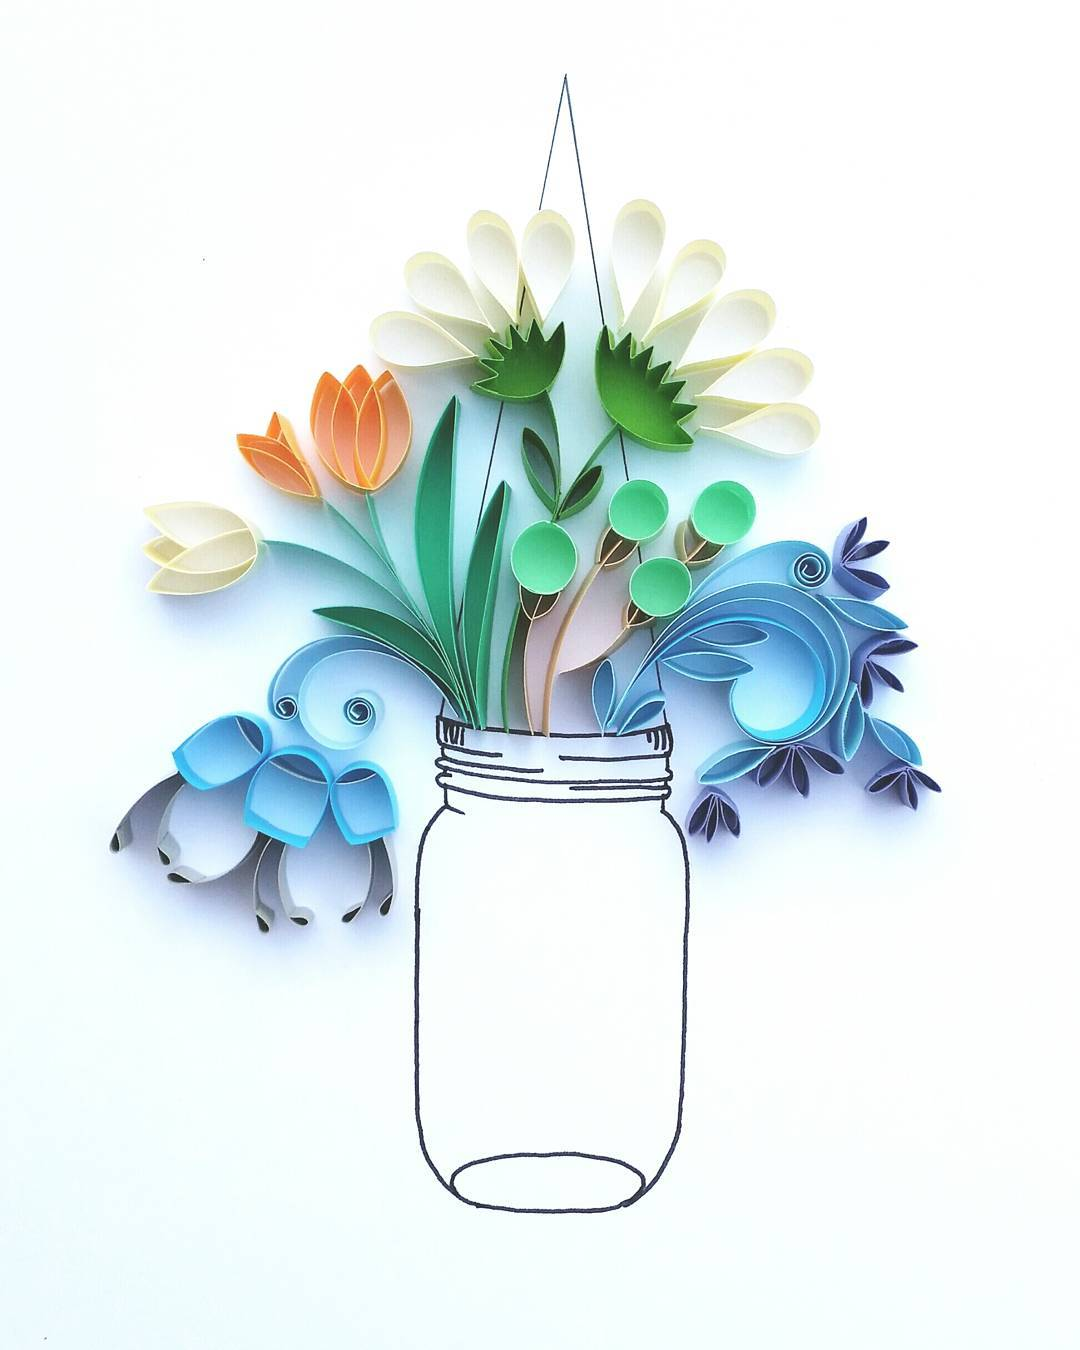 Whimsical Quilled Illustrations by Meloney Celliers - Vase